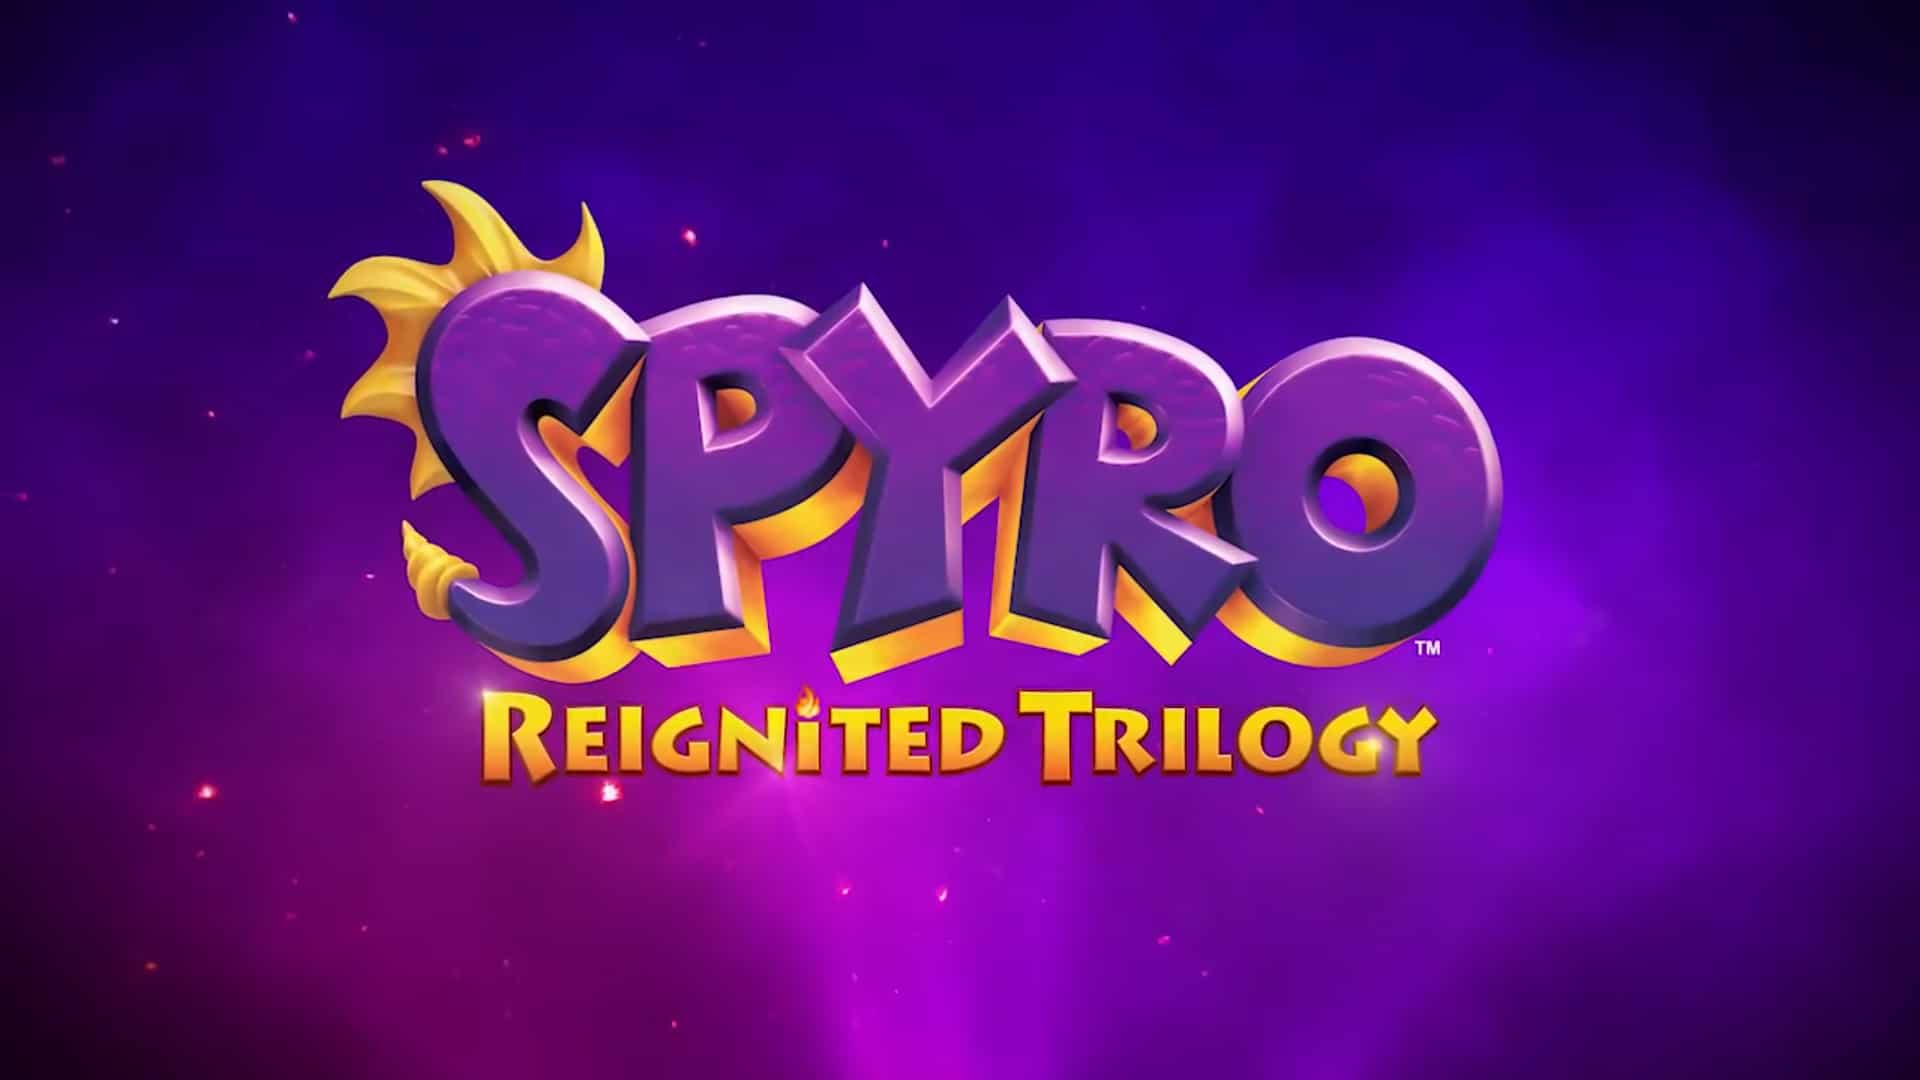 Spyro Reignited Trilogy Brings The Heat To Nintendo Switch And Steam This September